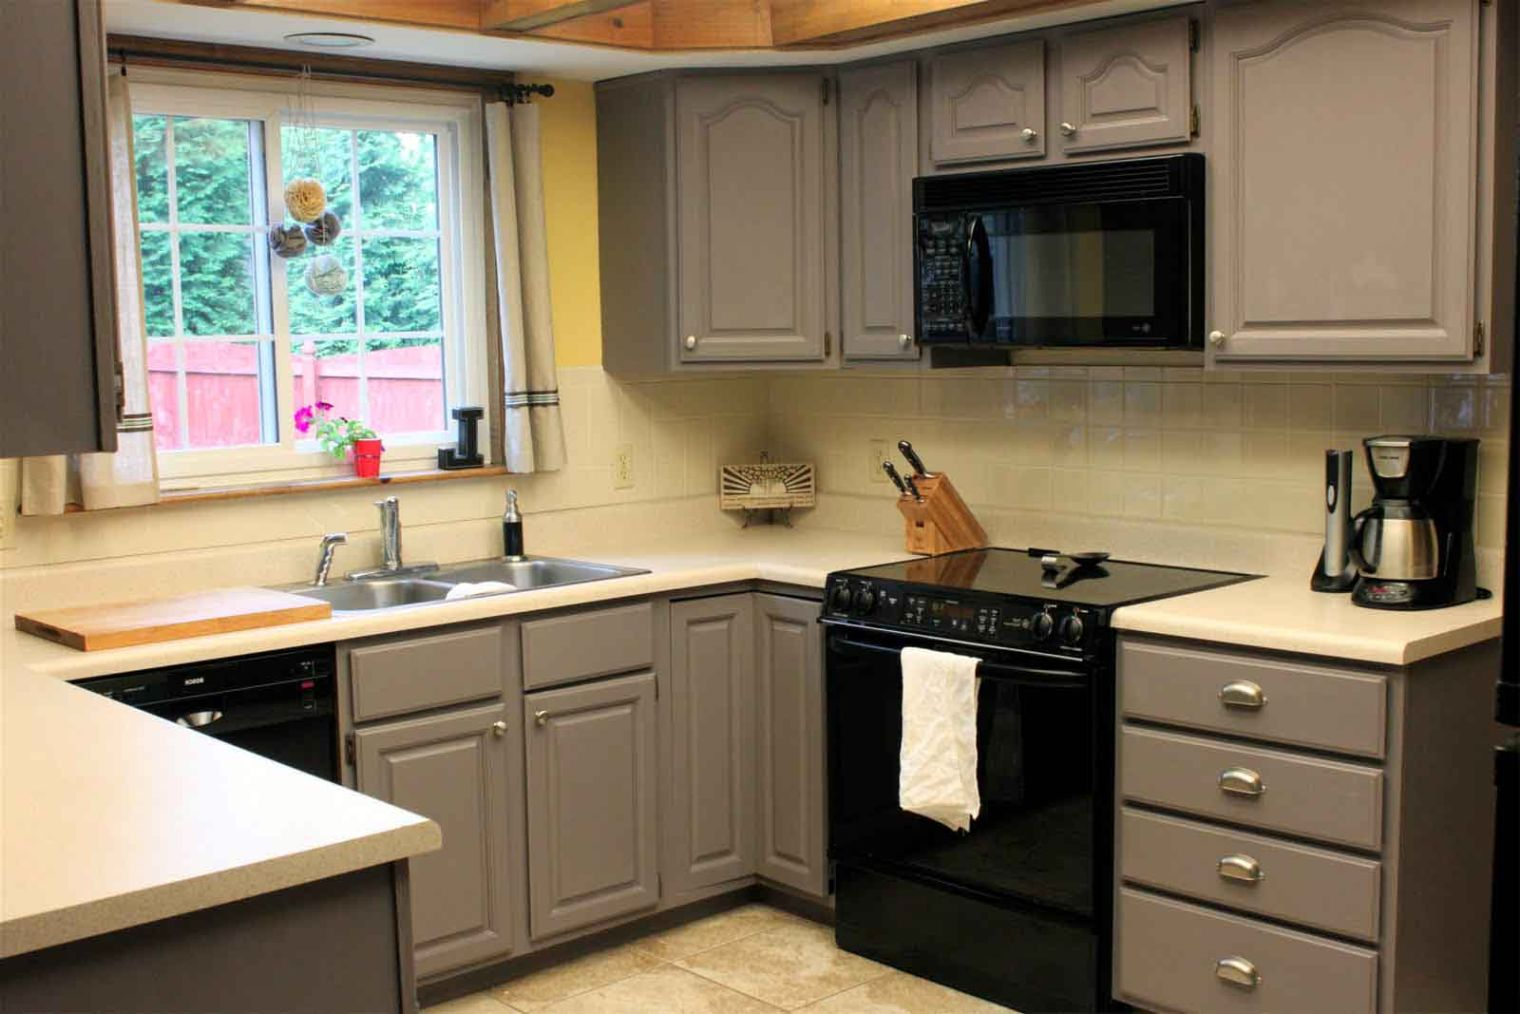 17 Superb Gray Kitchen Cabinet Designs Interiors Inside Ideas Interiors design about Everything [magnanprojects.com]